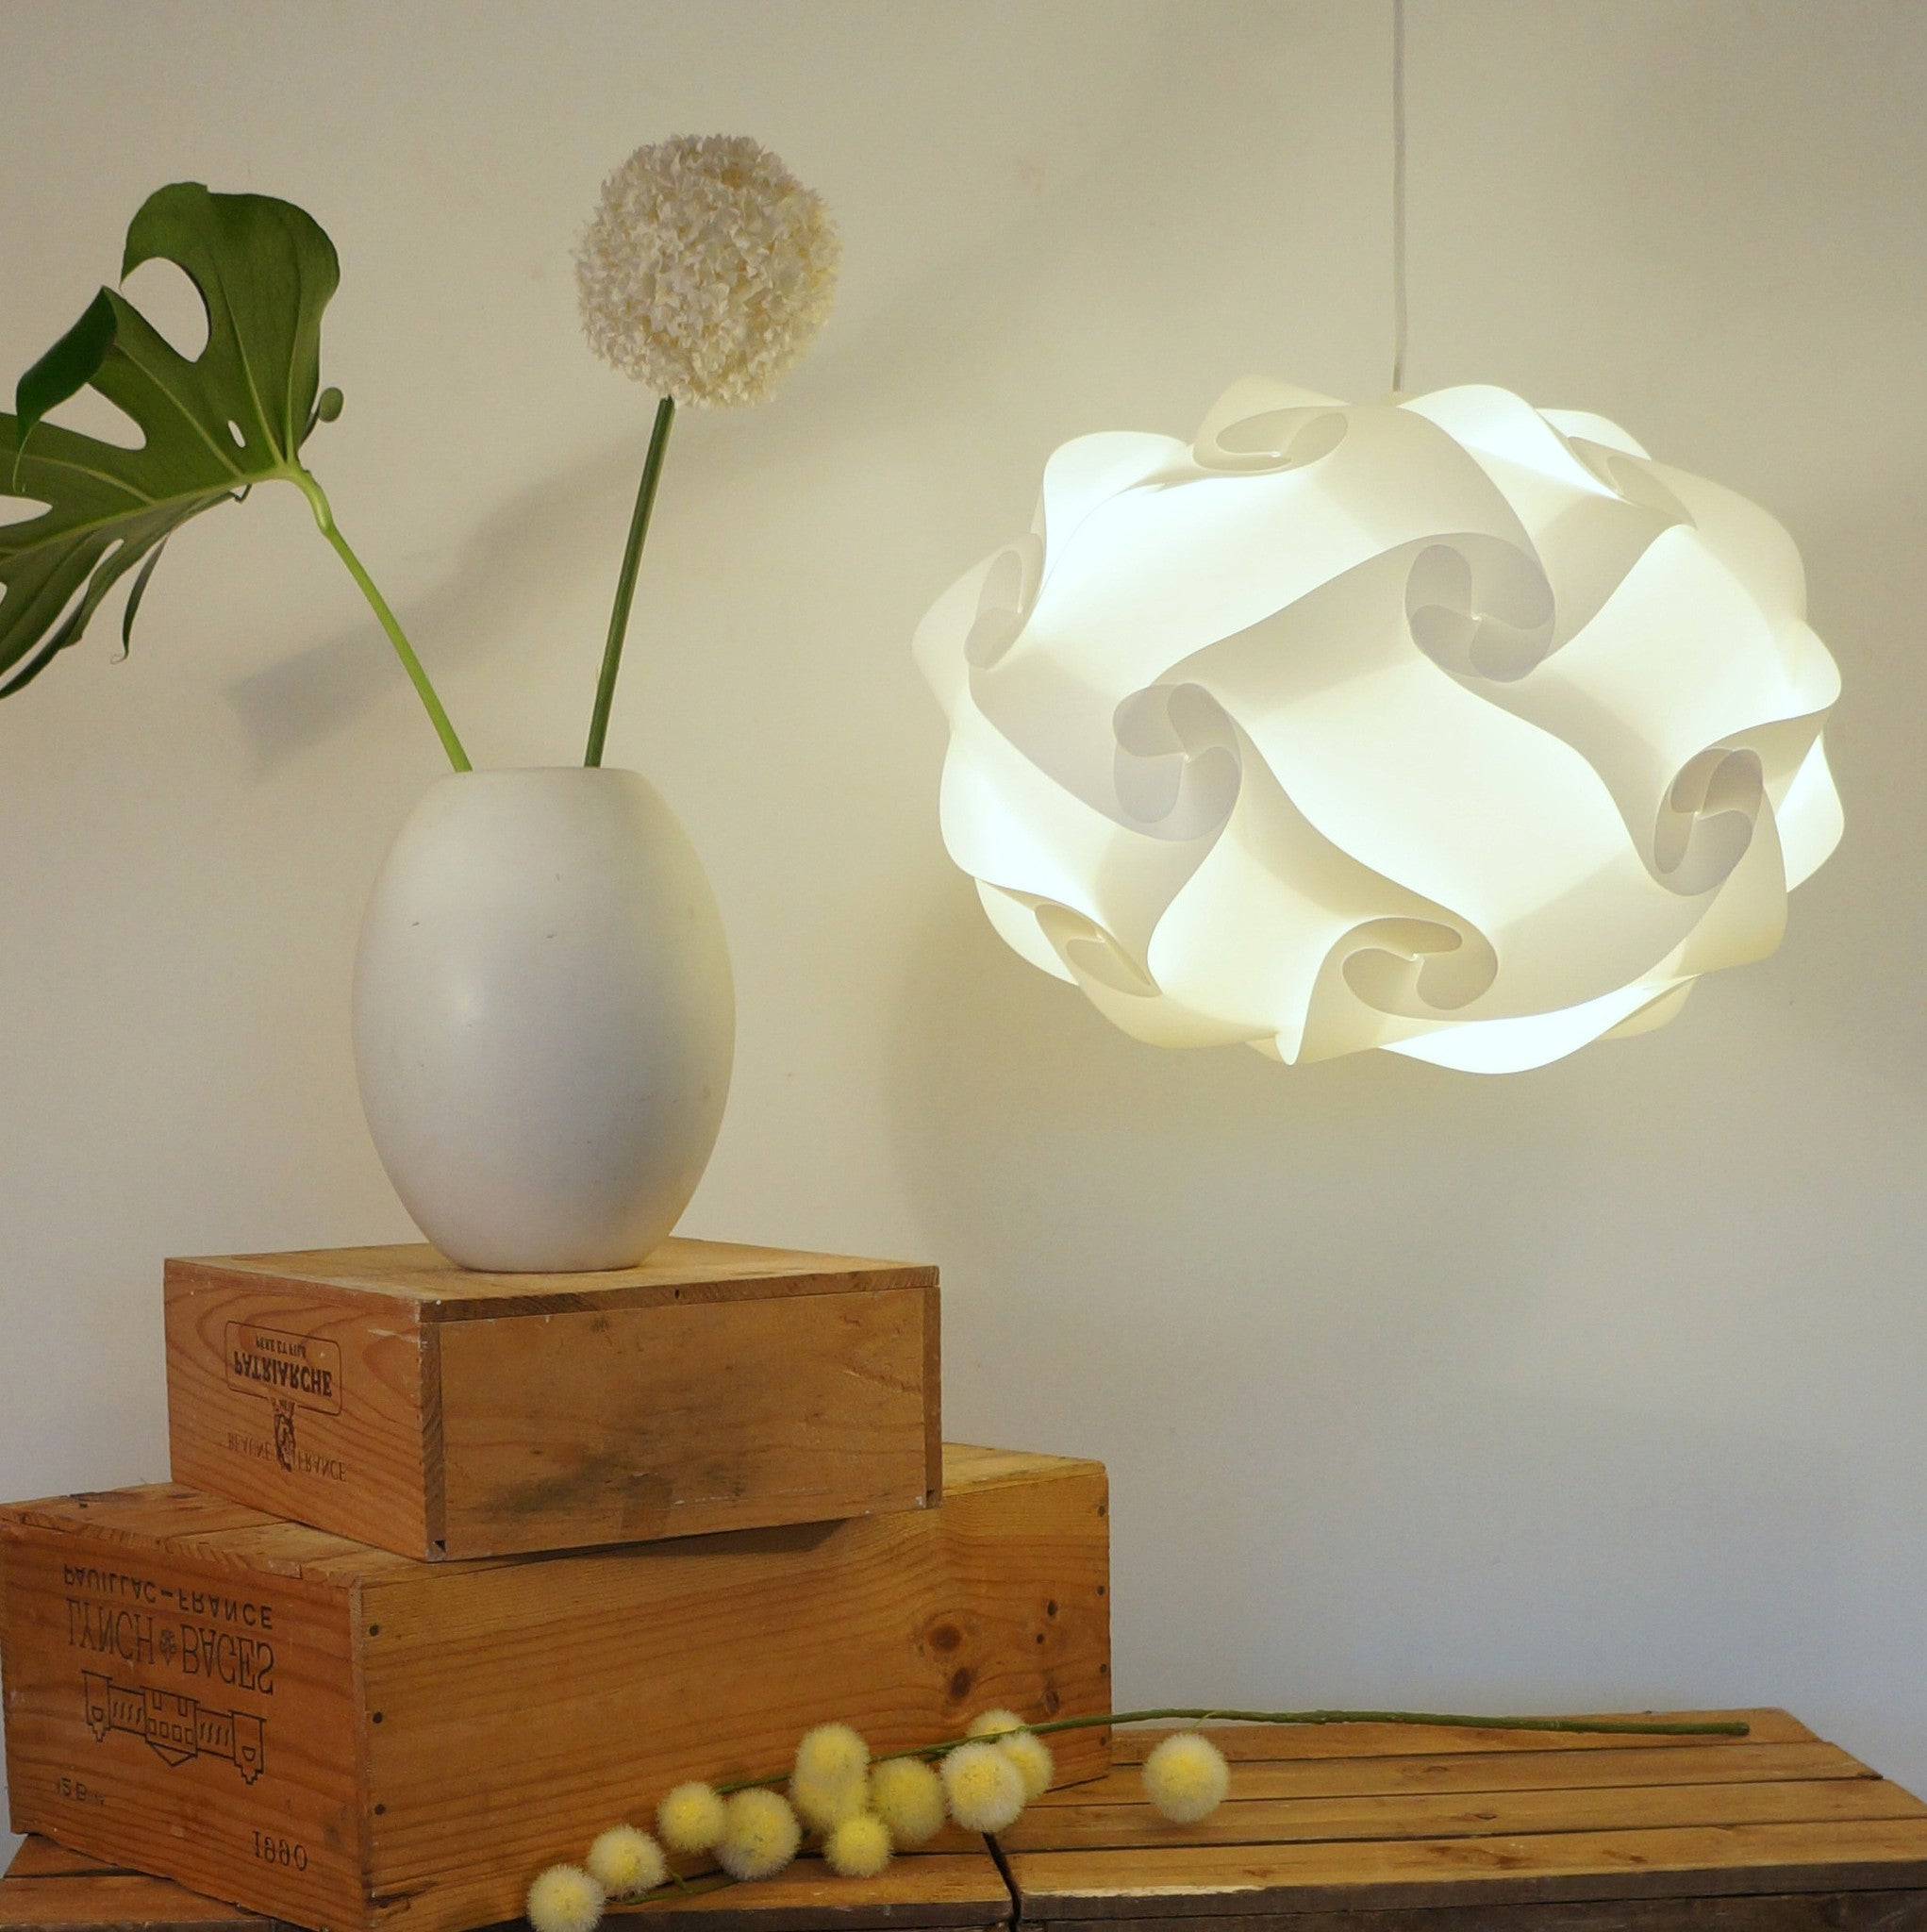 Smarty Lamps Tukia Ceiling Light Shade  Smart Deco Homeware Lighting and Art by Jacqueline hammond